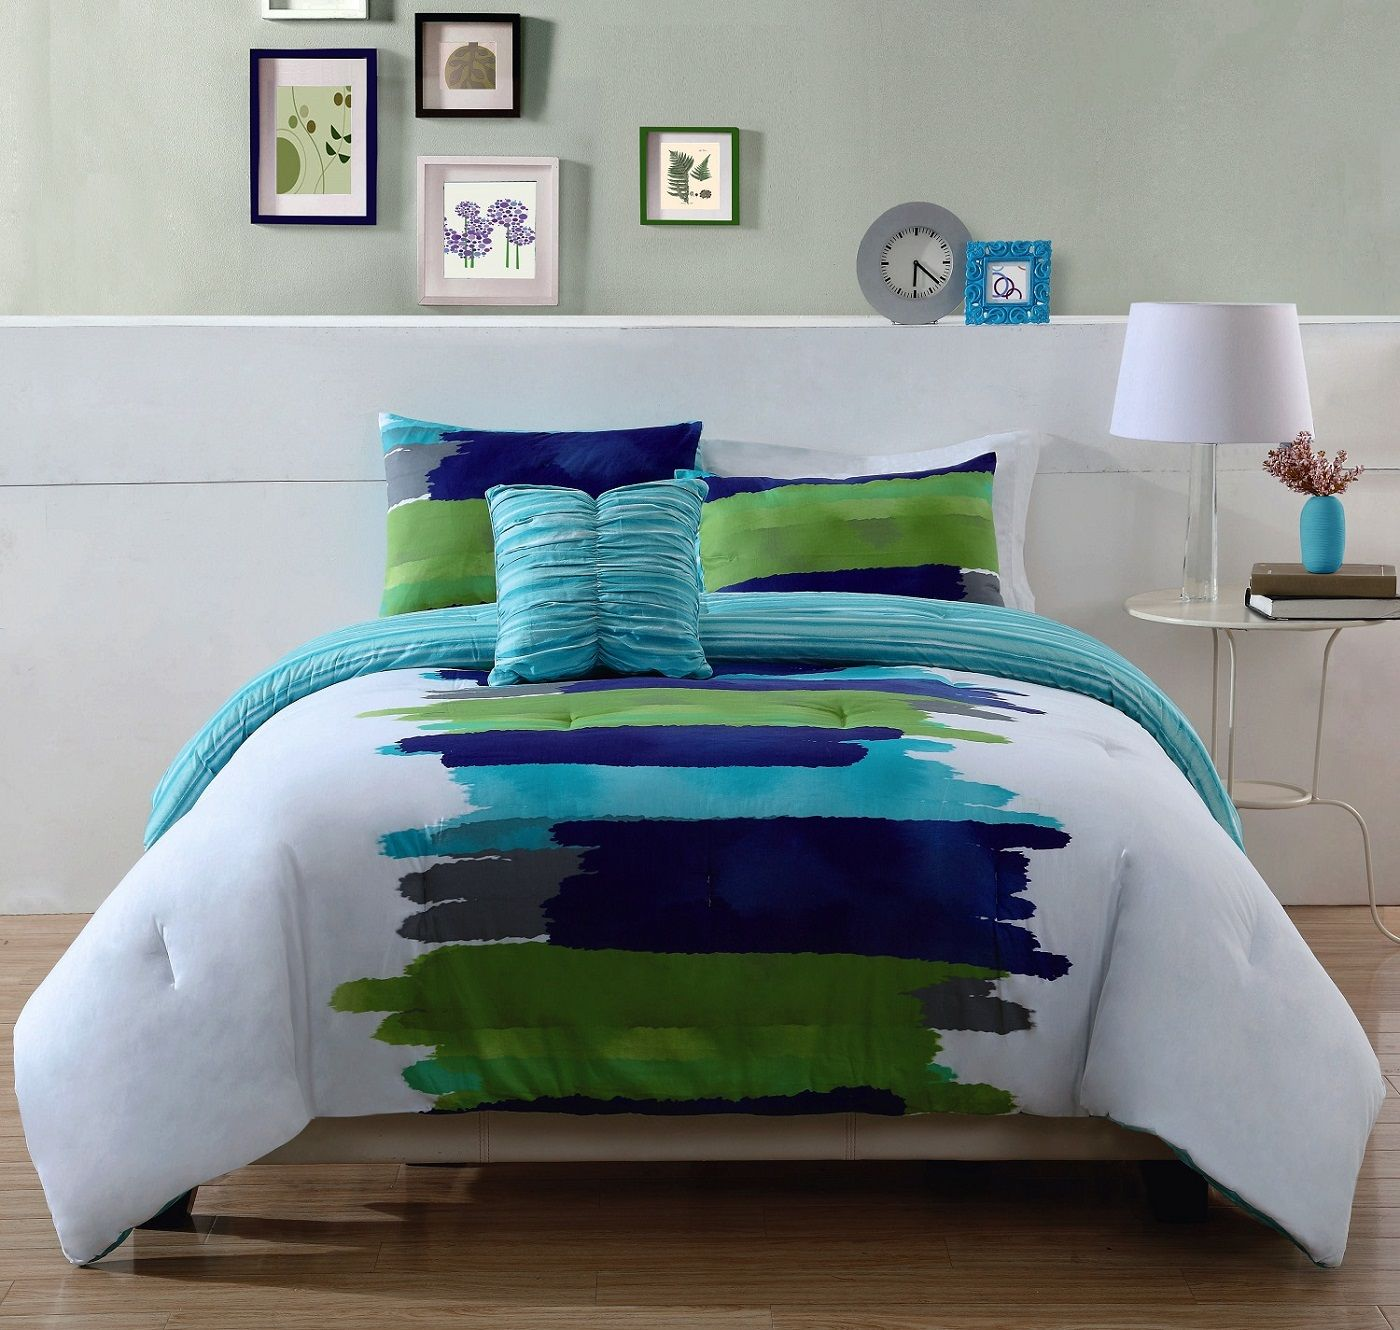 blue reversible green quilt and comforter forest royal floral product marigold